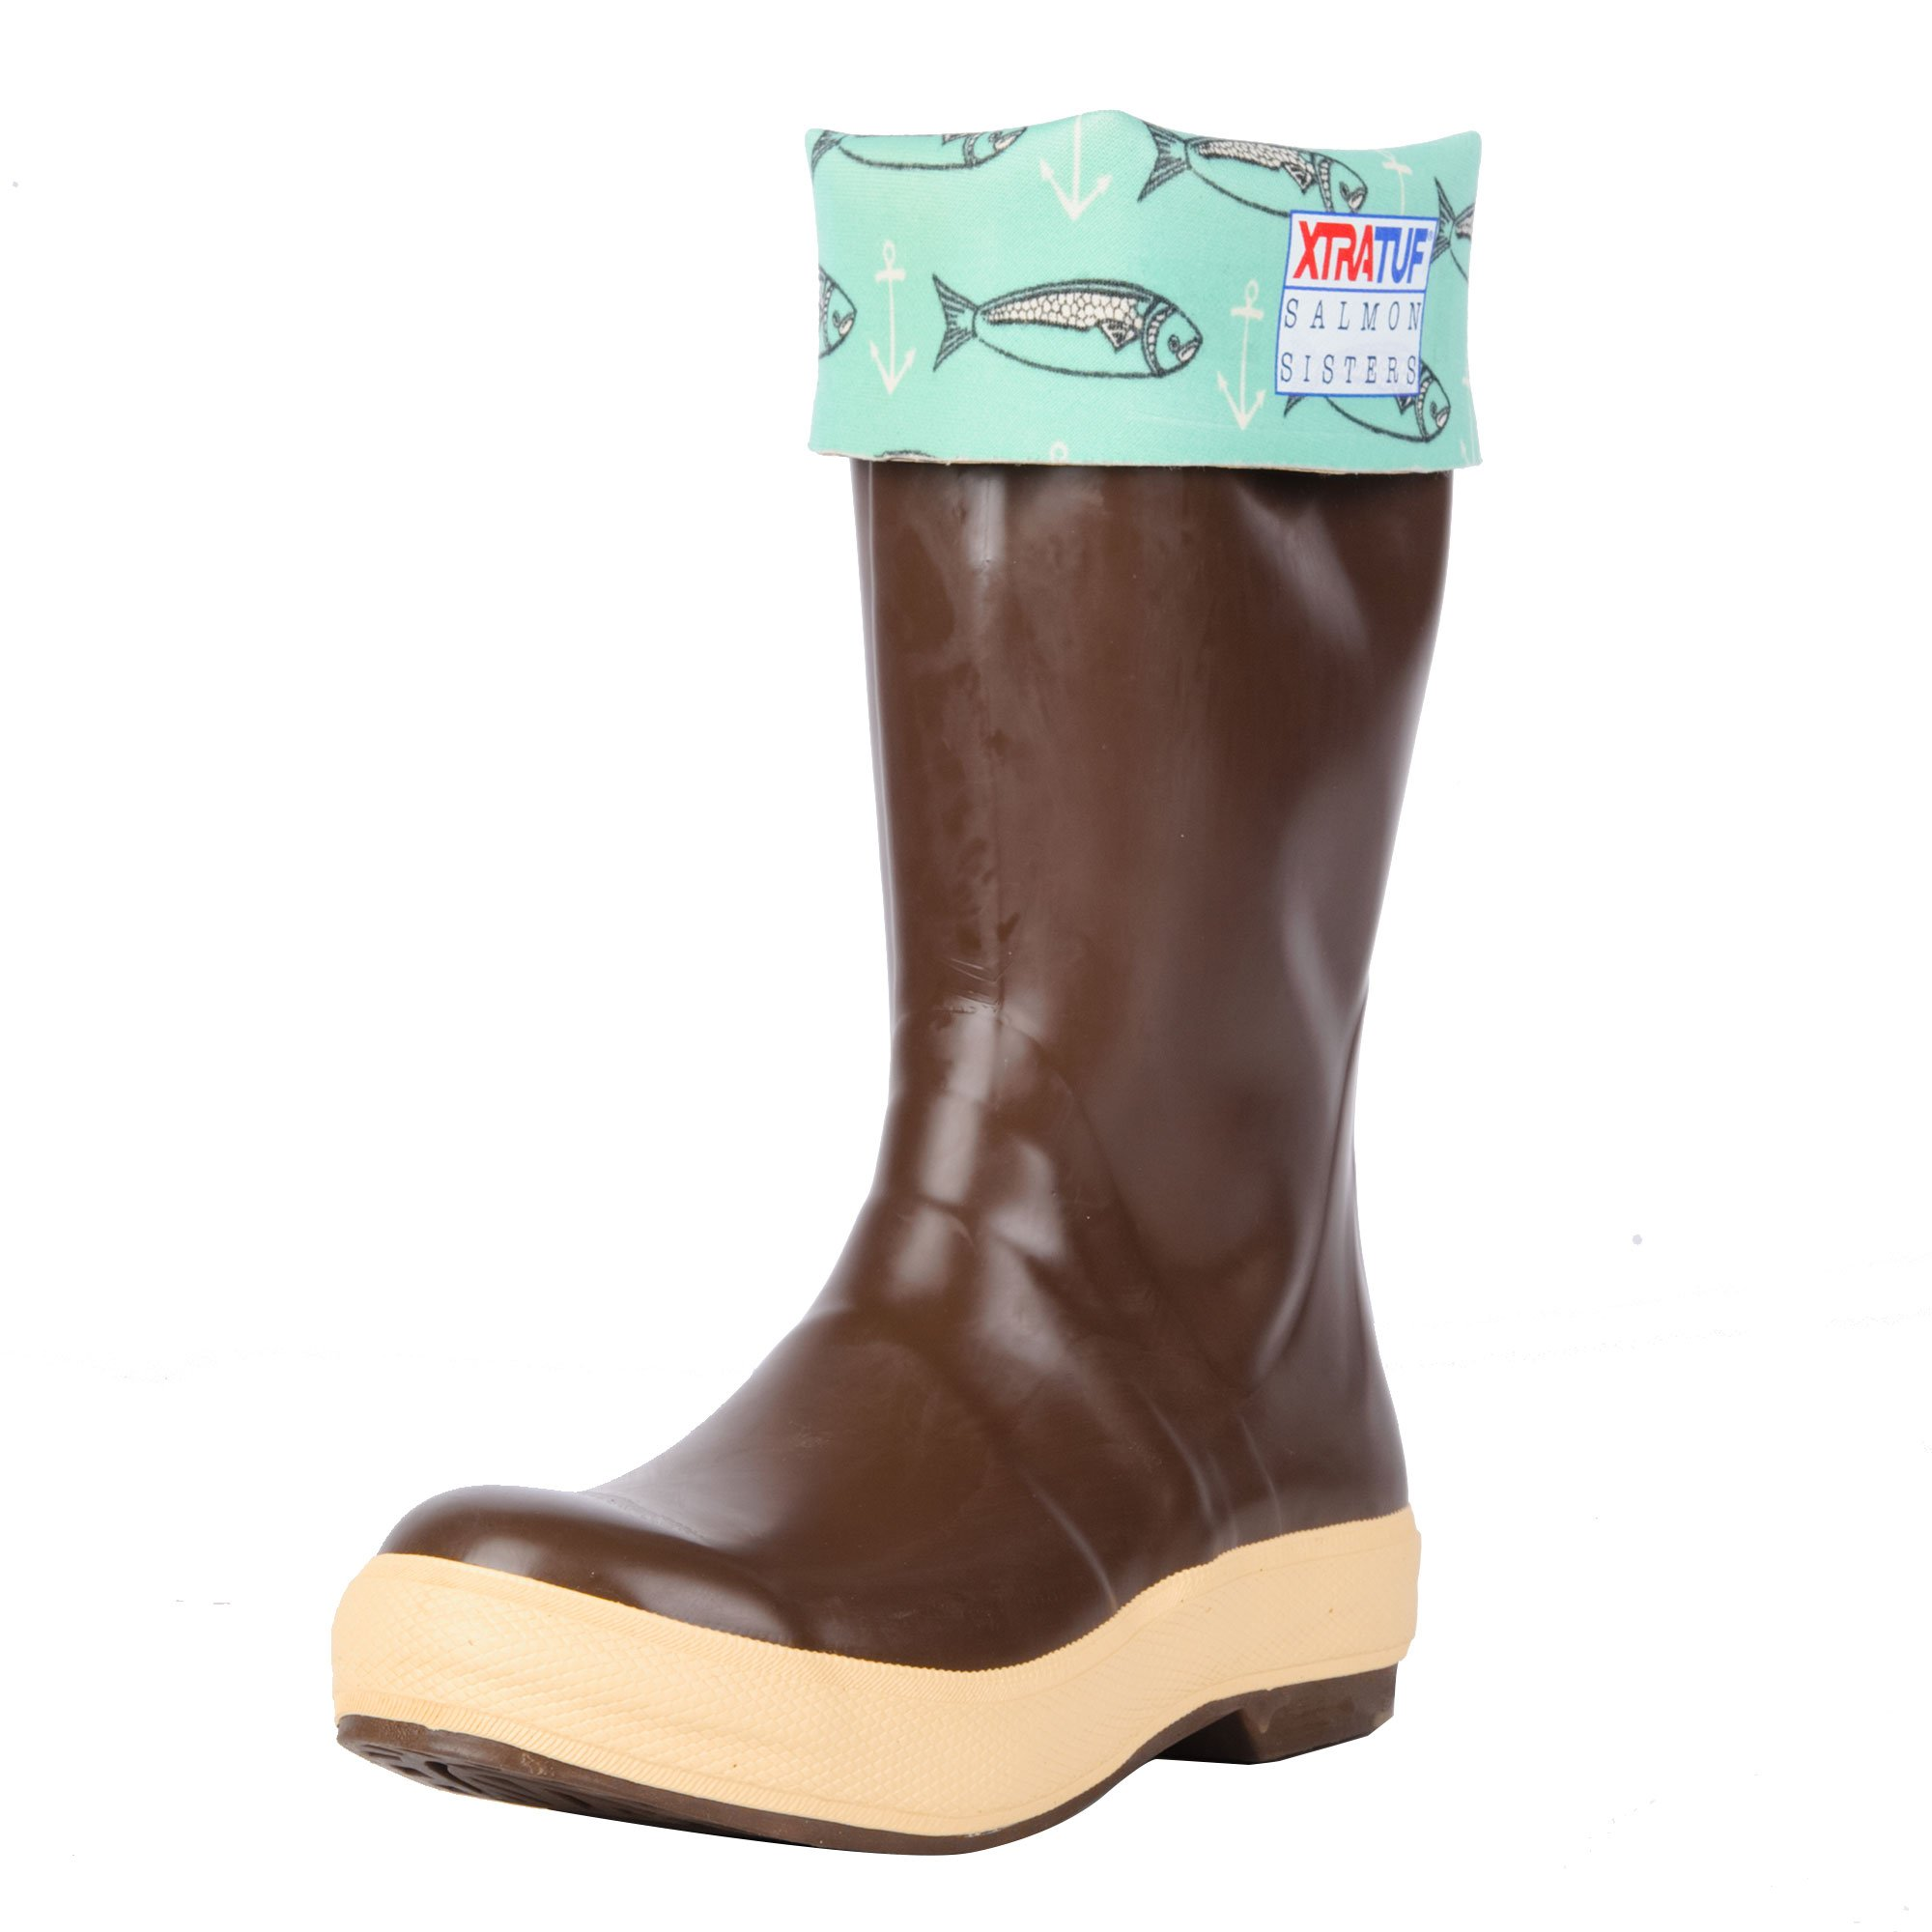 XTRATUF Salmon Sisters Legacy Series 15'' Fish Print-Lined Neoprene Women's Fishing Boots, Copper & Tan (22390)